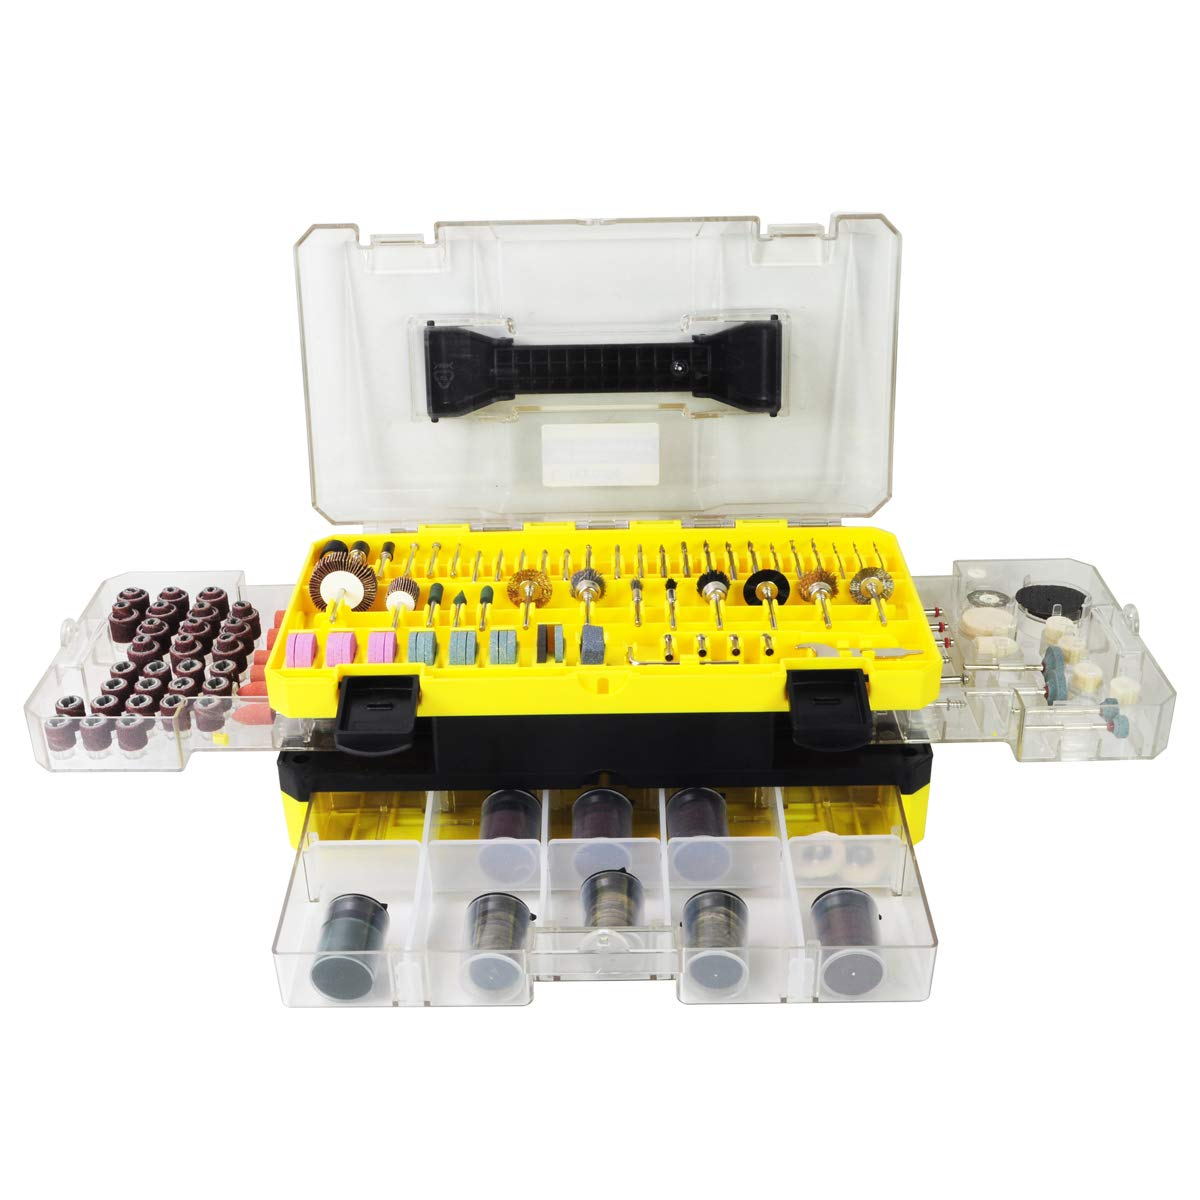 Rotary Tool Accessories Kit, Longmate 397 pcs Electric Rotary Accessory Set for Cutting, Carving by Longmate